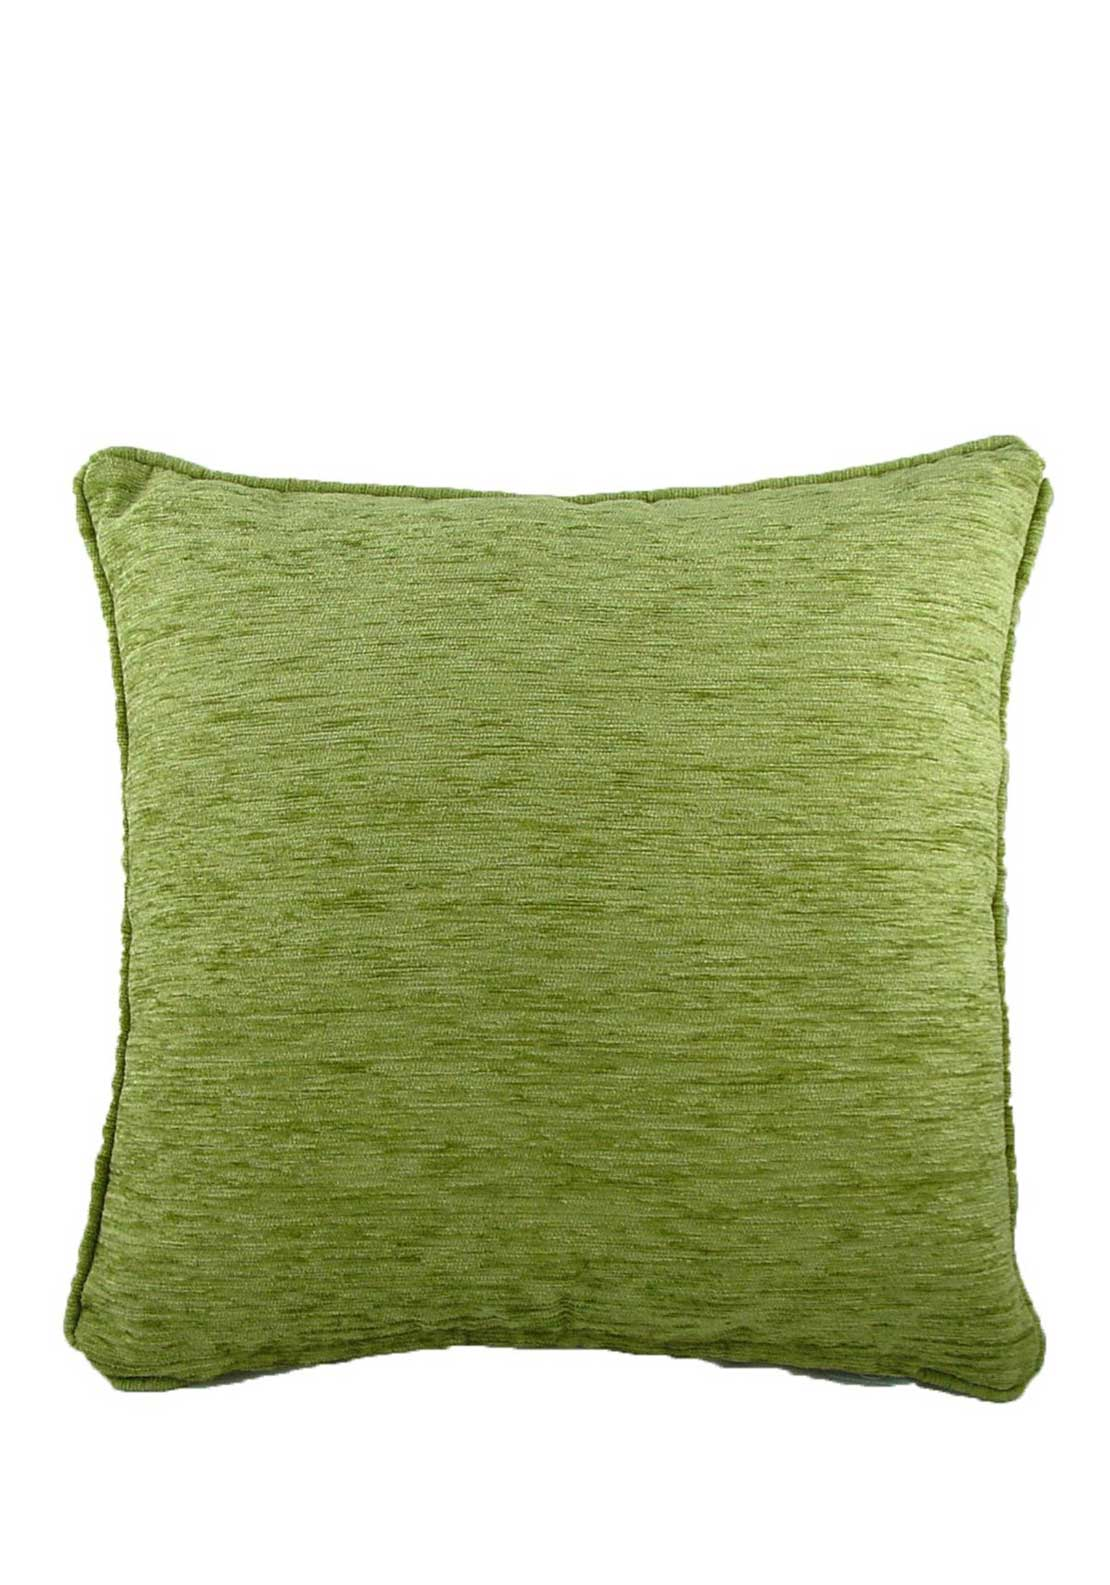 Savannah Chenille Cushion, 43 x 43cm, Sage